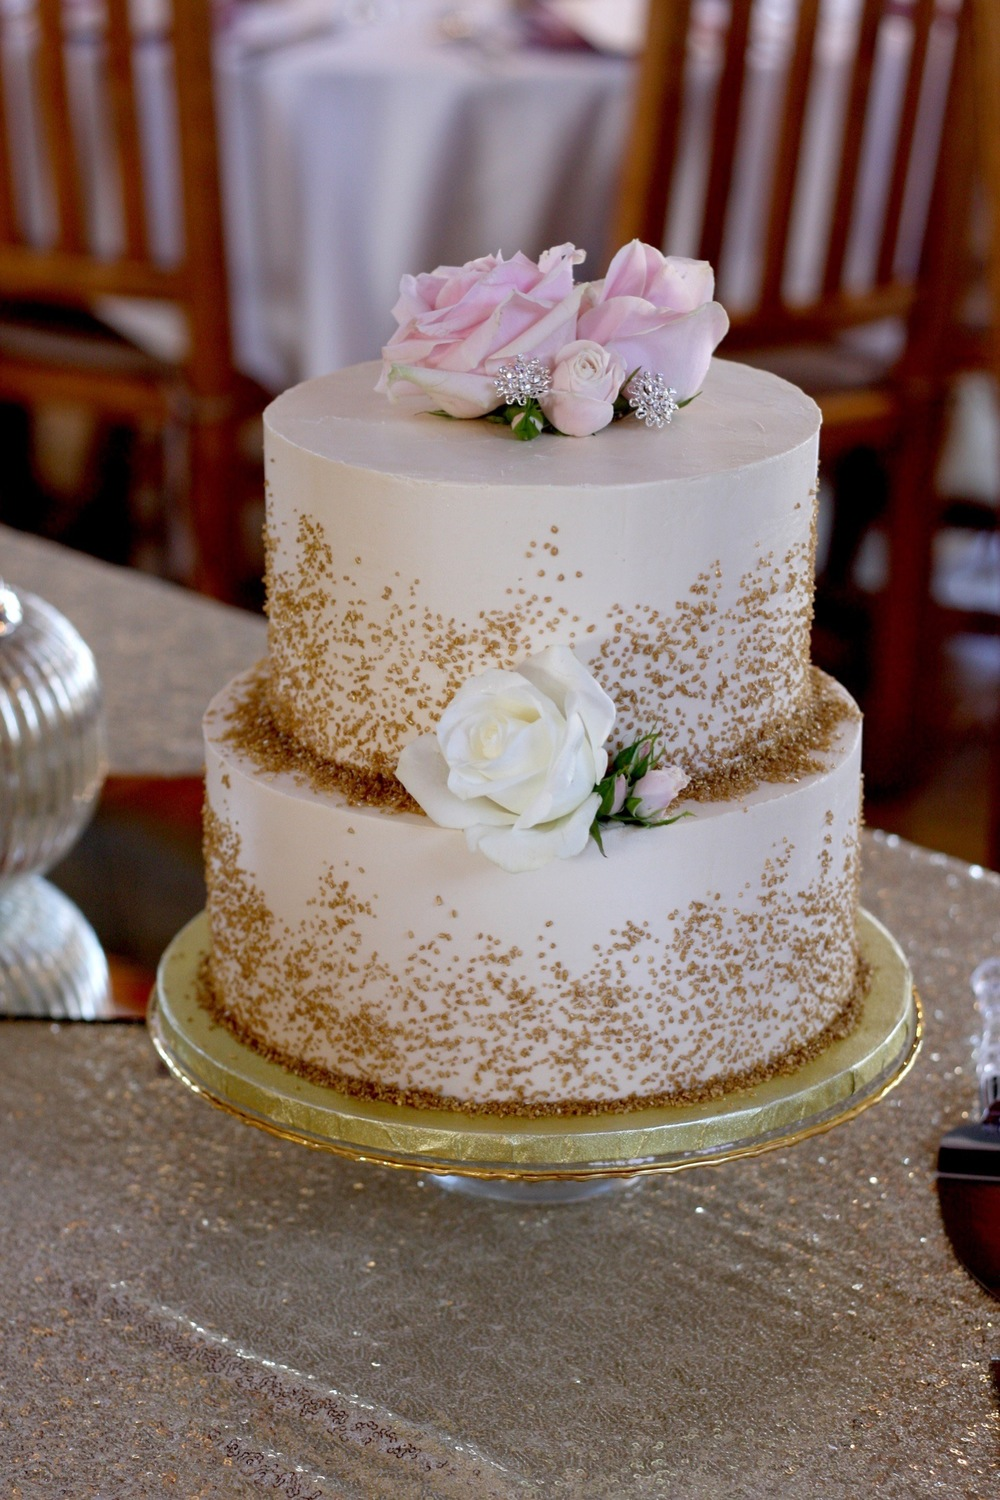 Buttercream Cake with Gold Sparkling Sugar